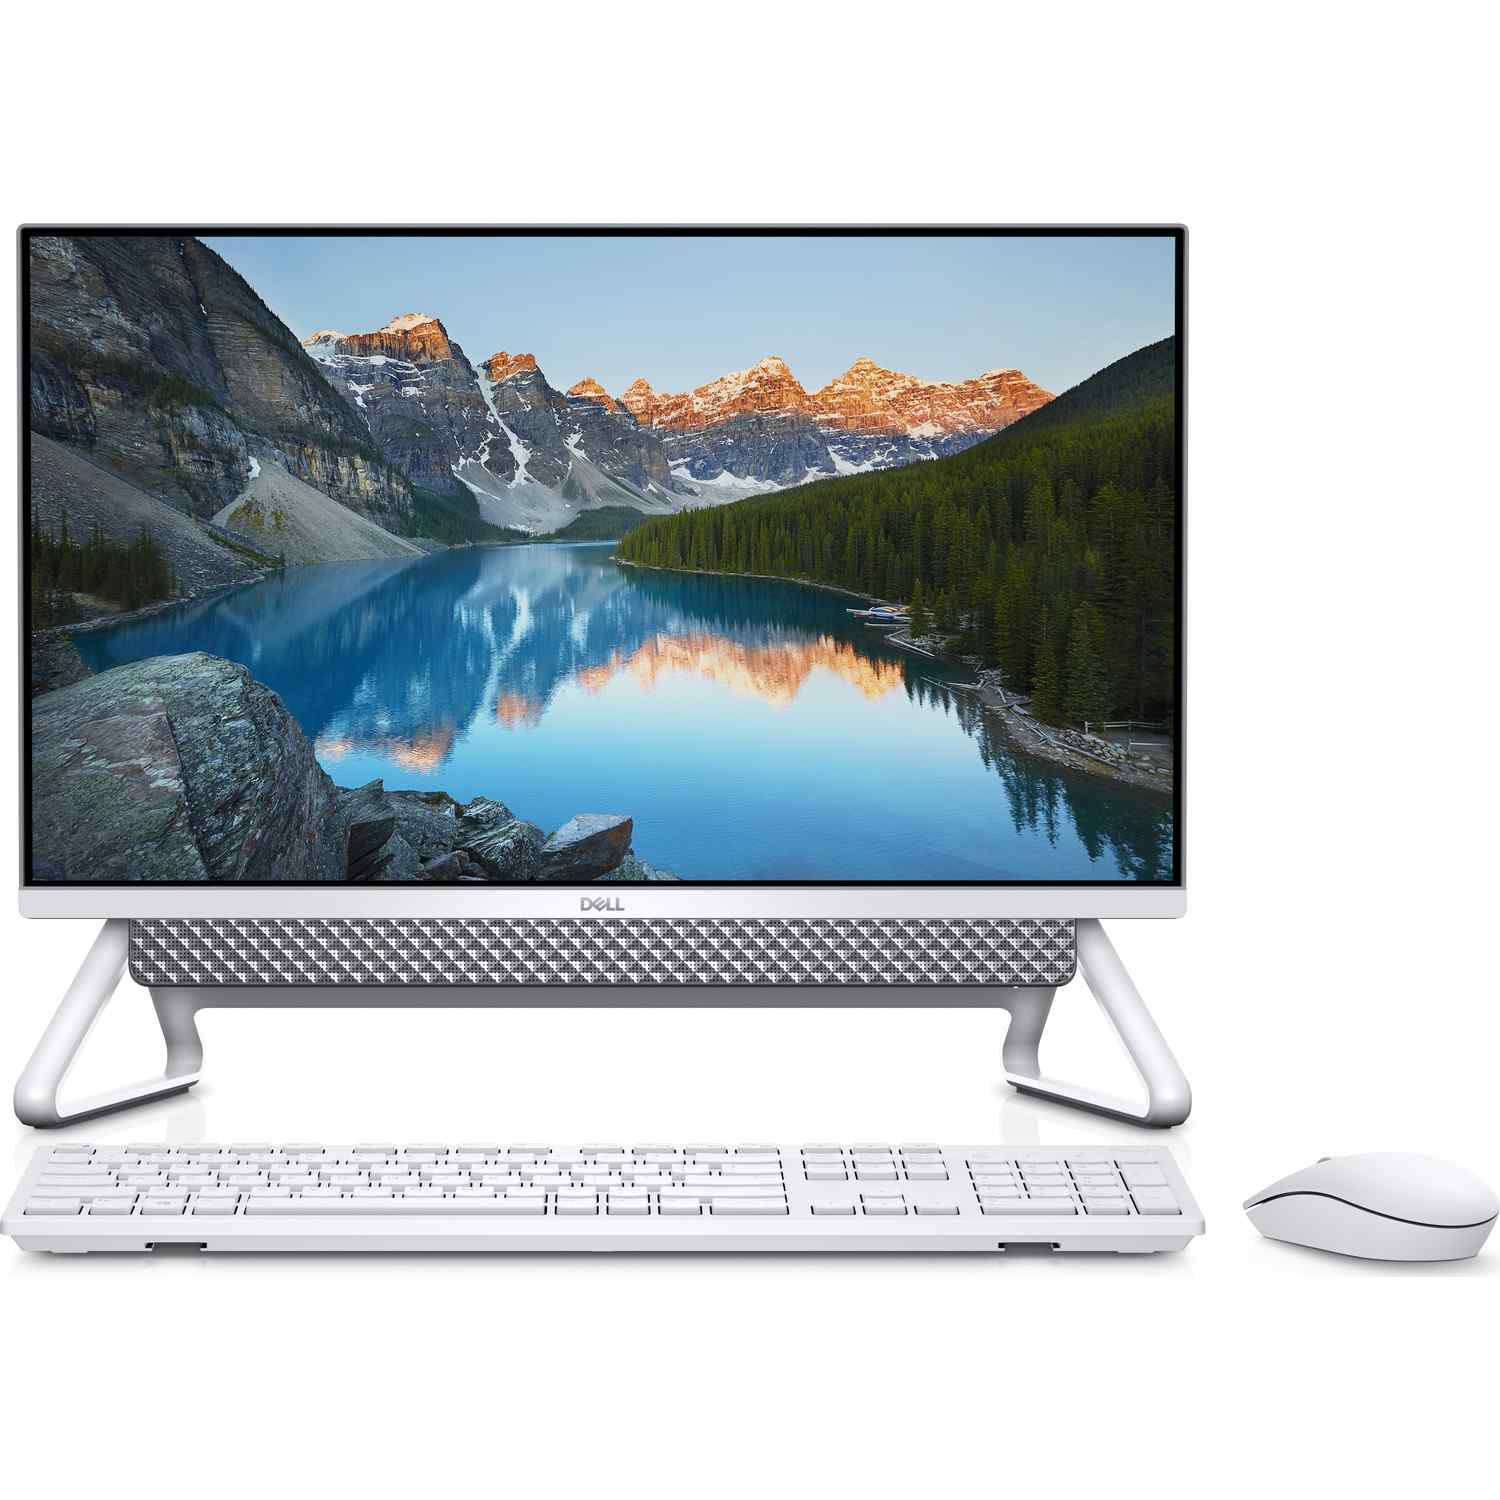 "DELL S510D512WP81C INSPIRON 5490 I7-10510U 8GB 1TB+512 GB SSD 23.8"" FHD NONTOUCH WIN10 PRO ALL IN ONE PC"